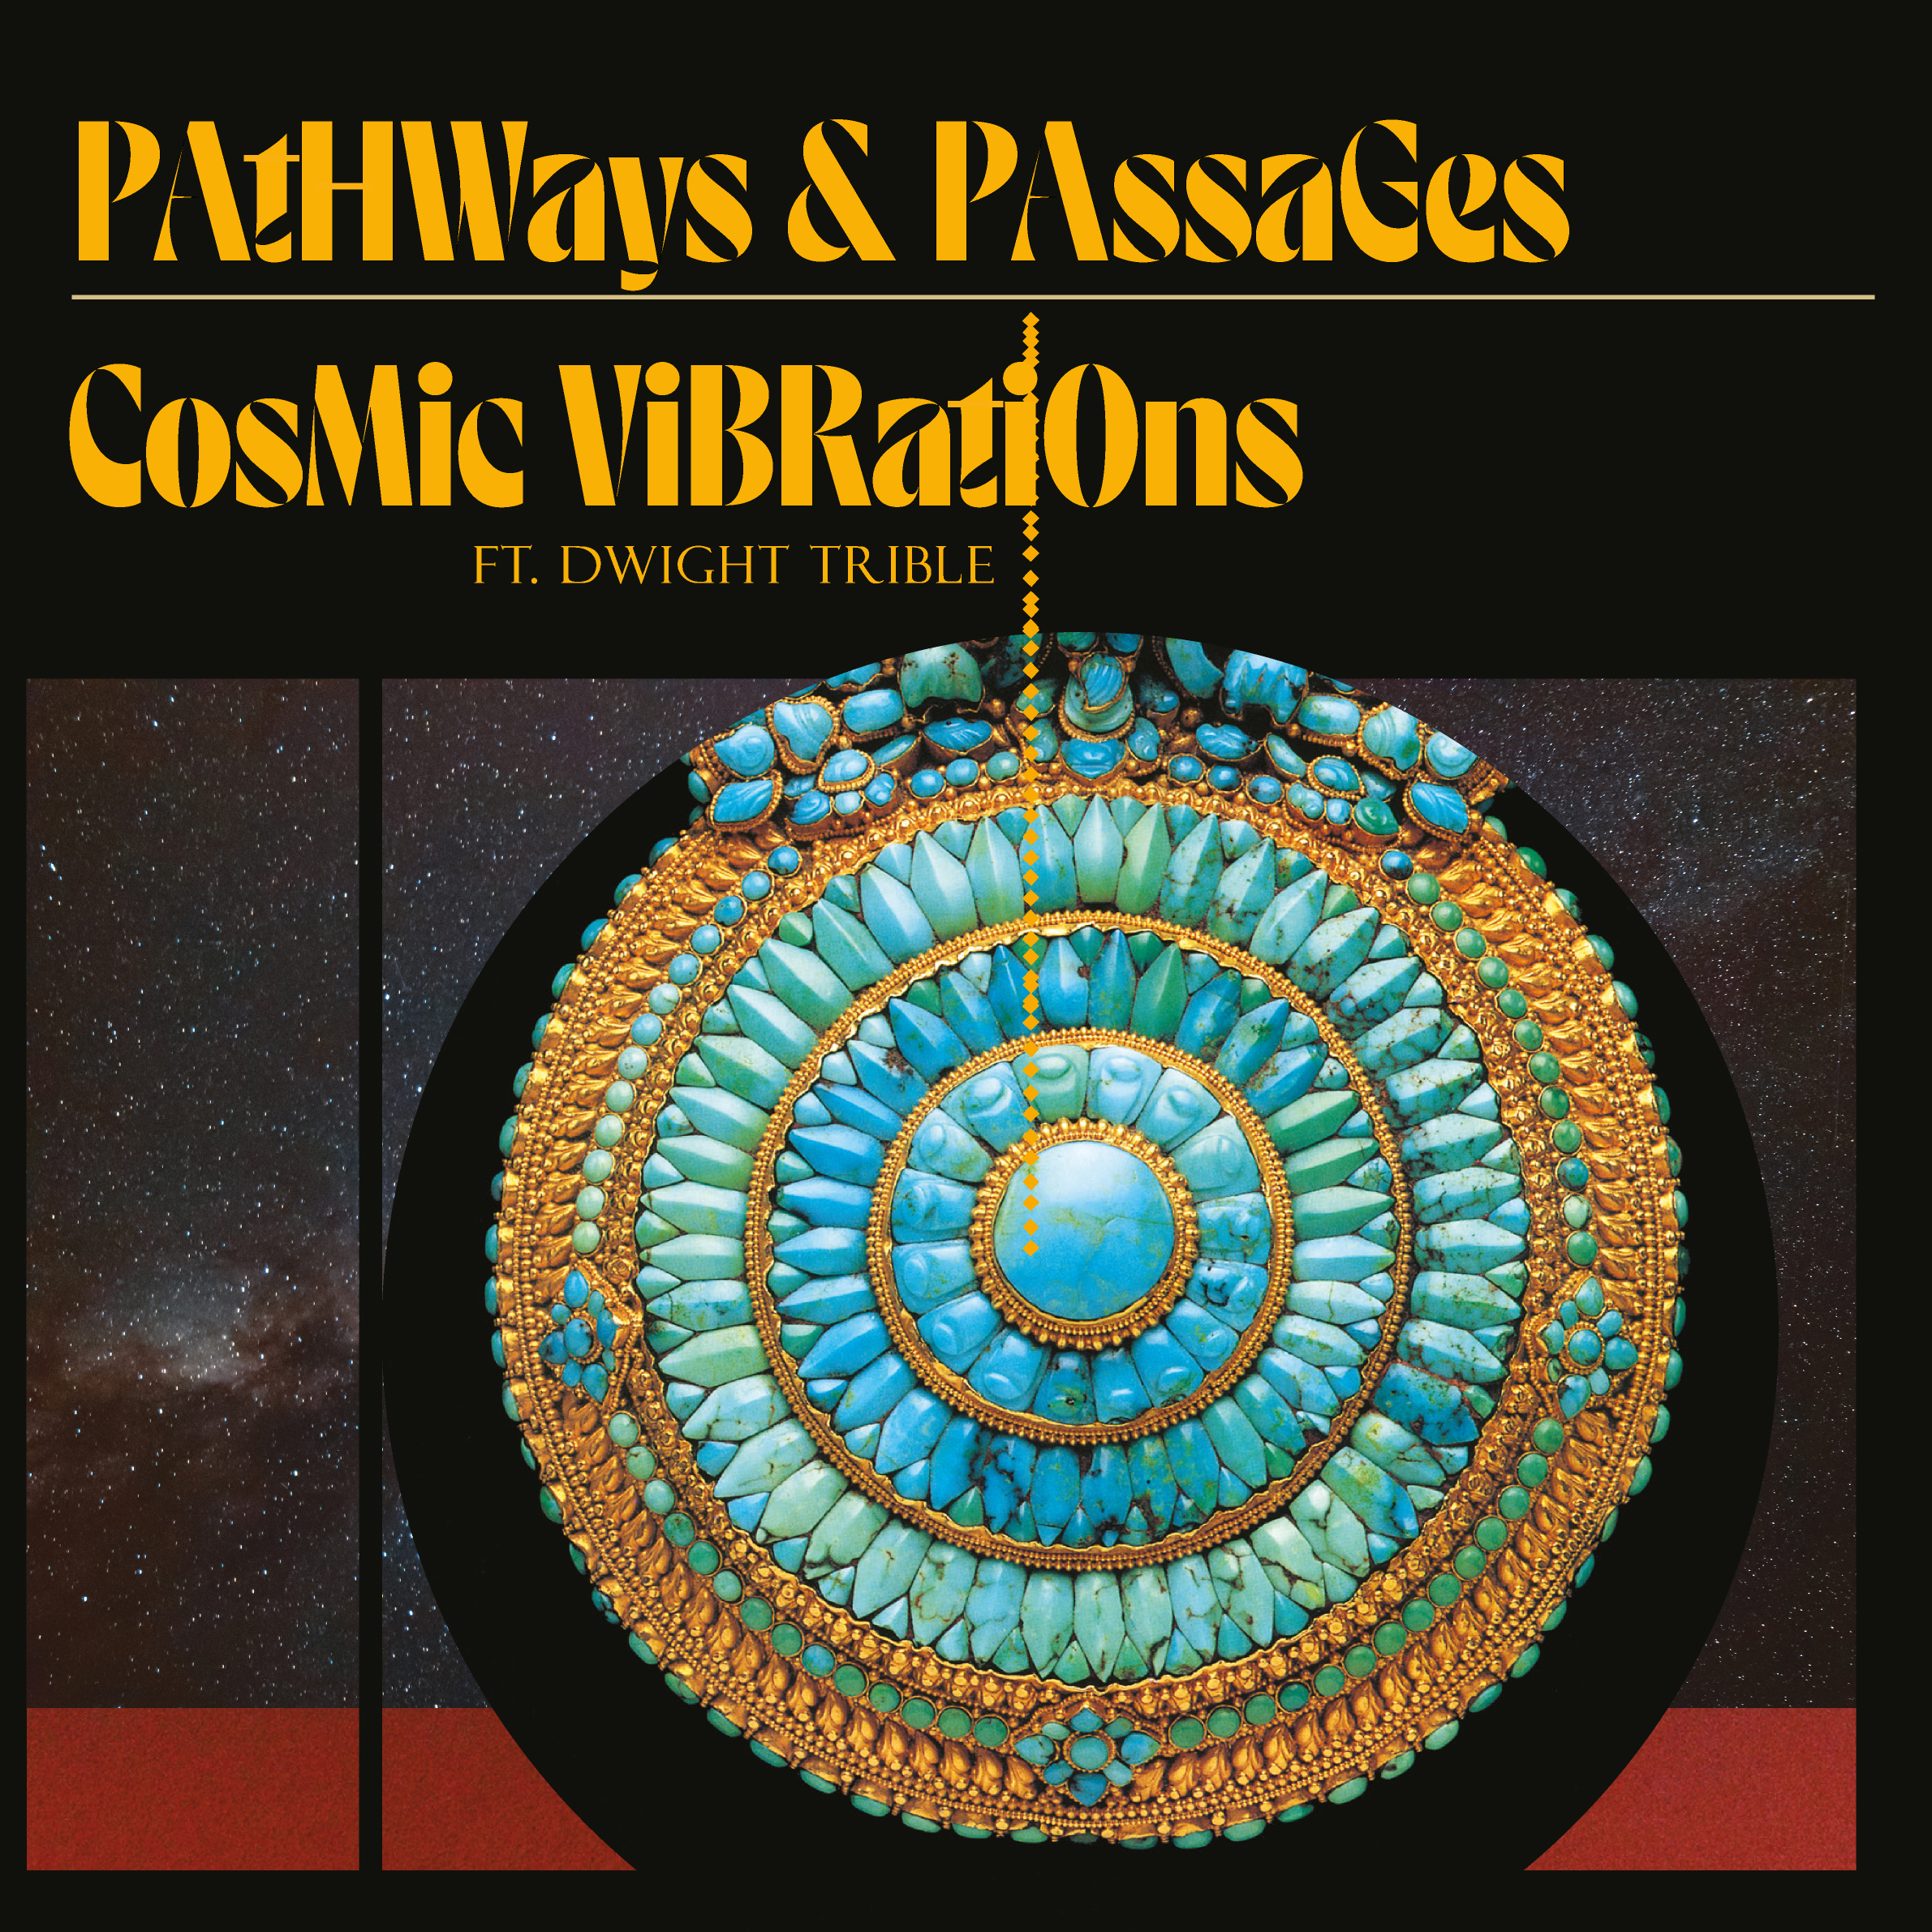 Cosmic Vibrations ft. Dwight Trible